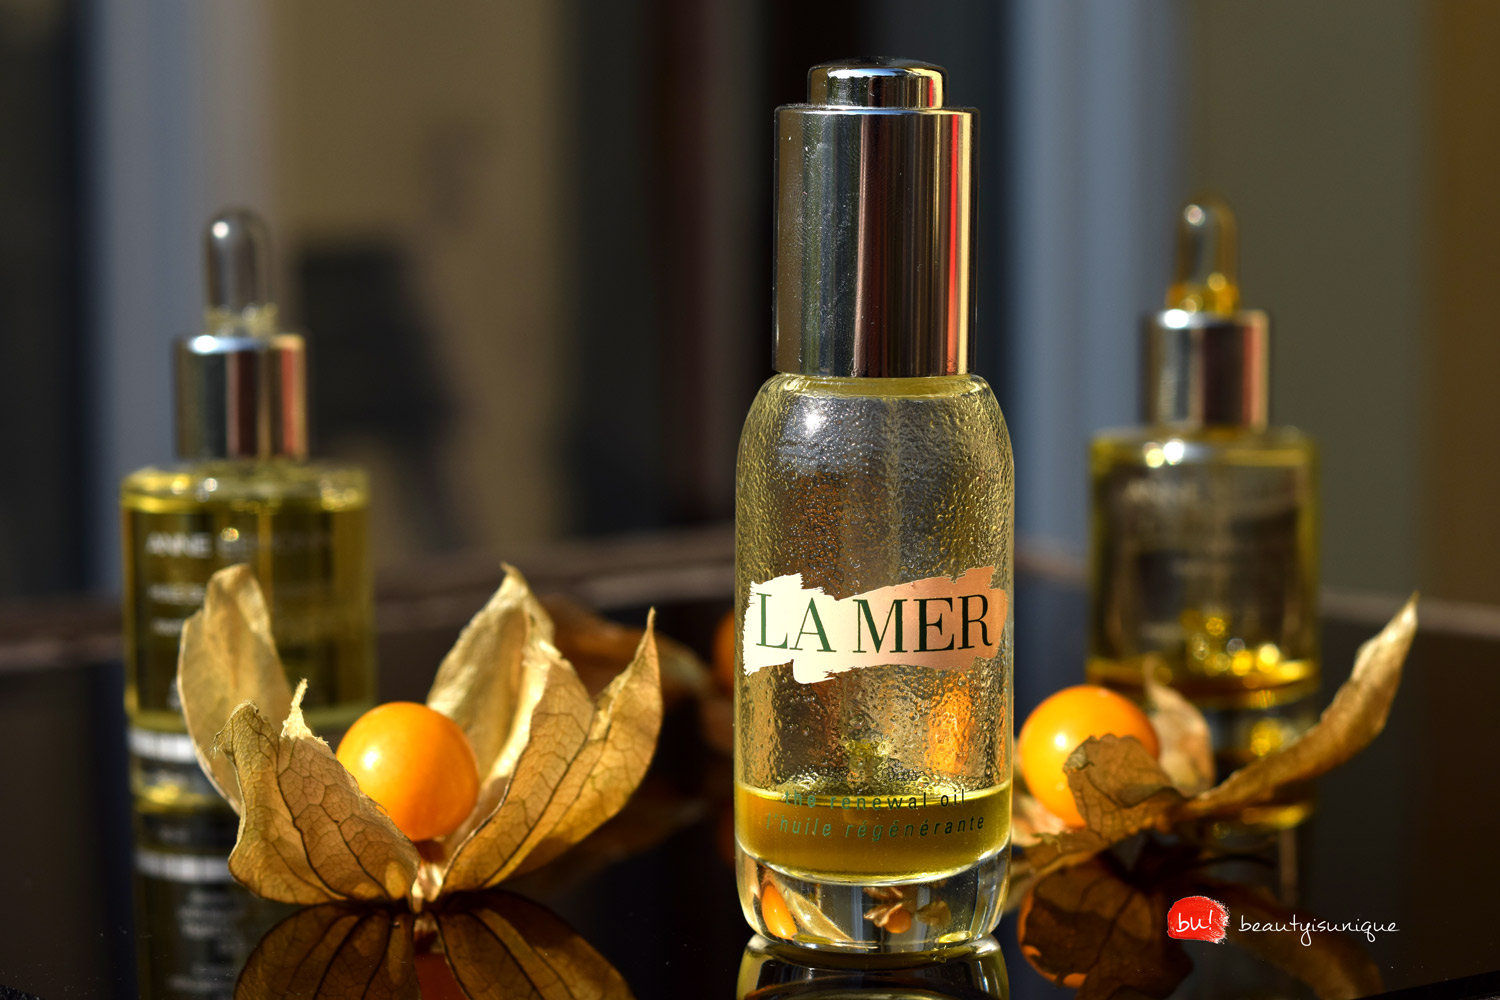 la-mer-the-renewal-oil